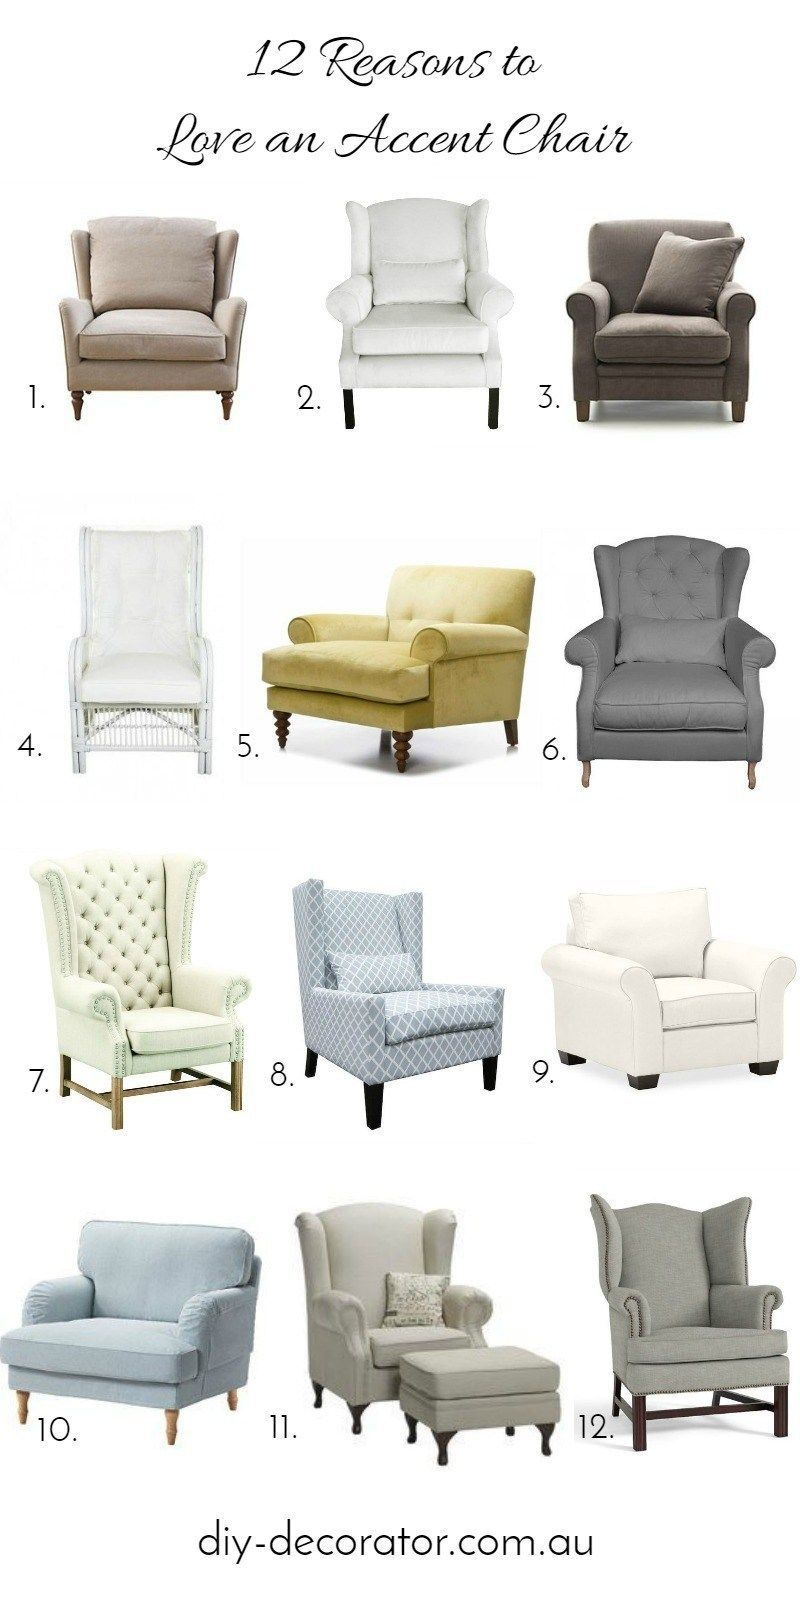 12 Reasons To Love Accent Chairs Diy Decorator Pink Tufted Accent Chair 21 Gorgeous Femin Accent Chairs For Living Room Upholstered Chairs Accent Chair Diy